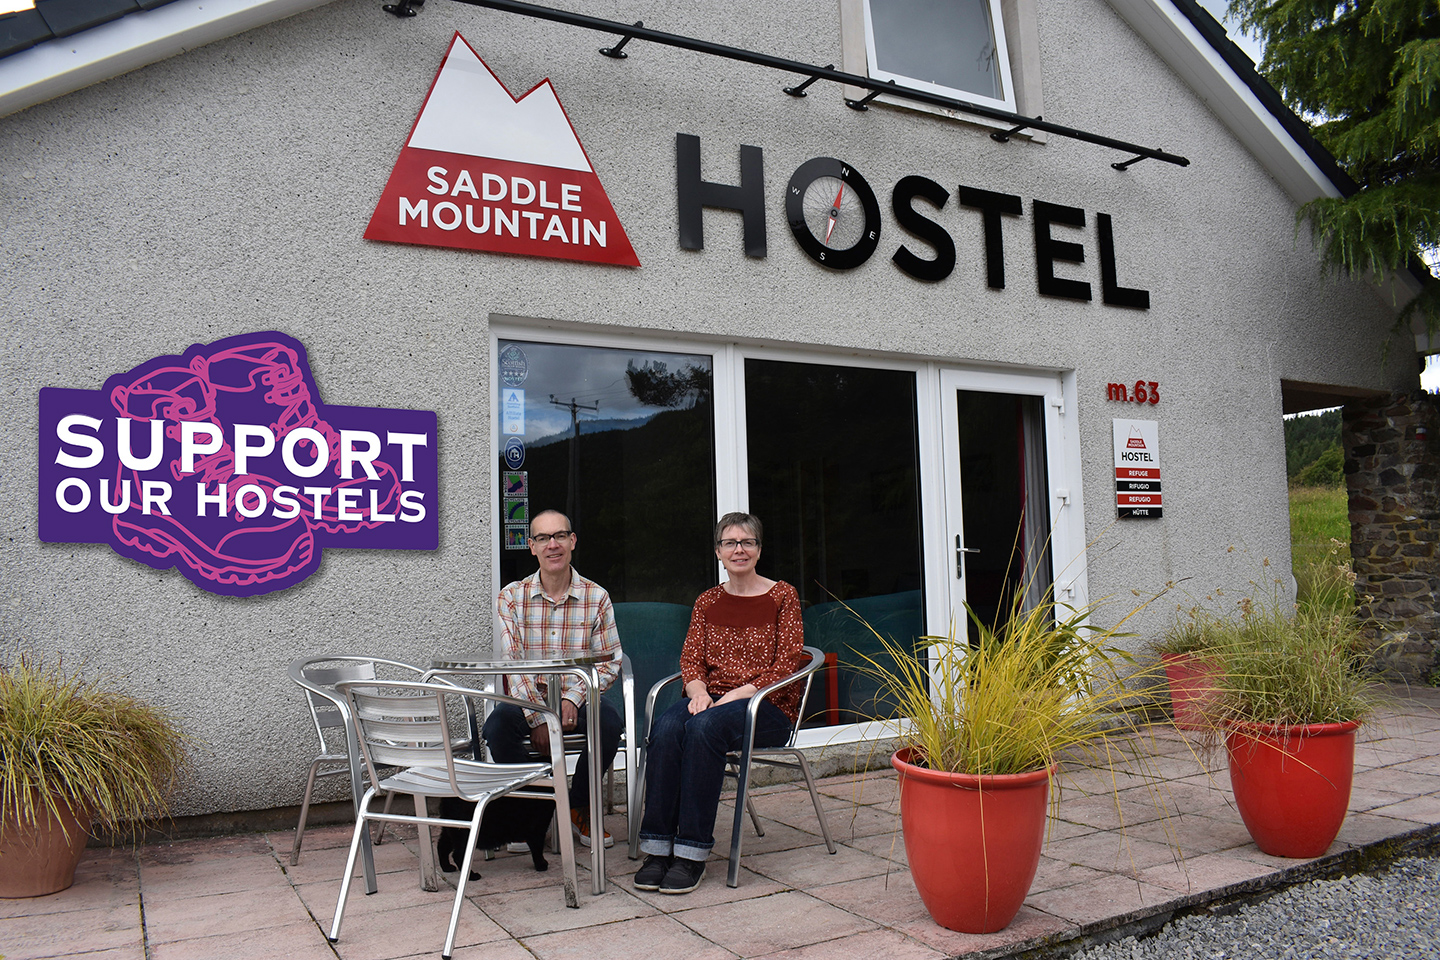 Saddle Mountain Hostel with Helen and Greg